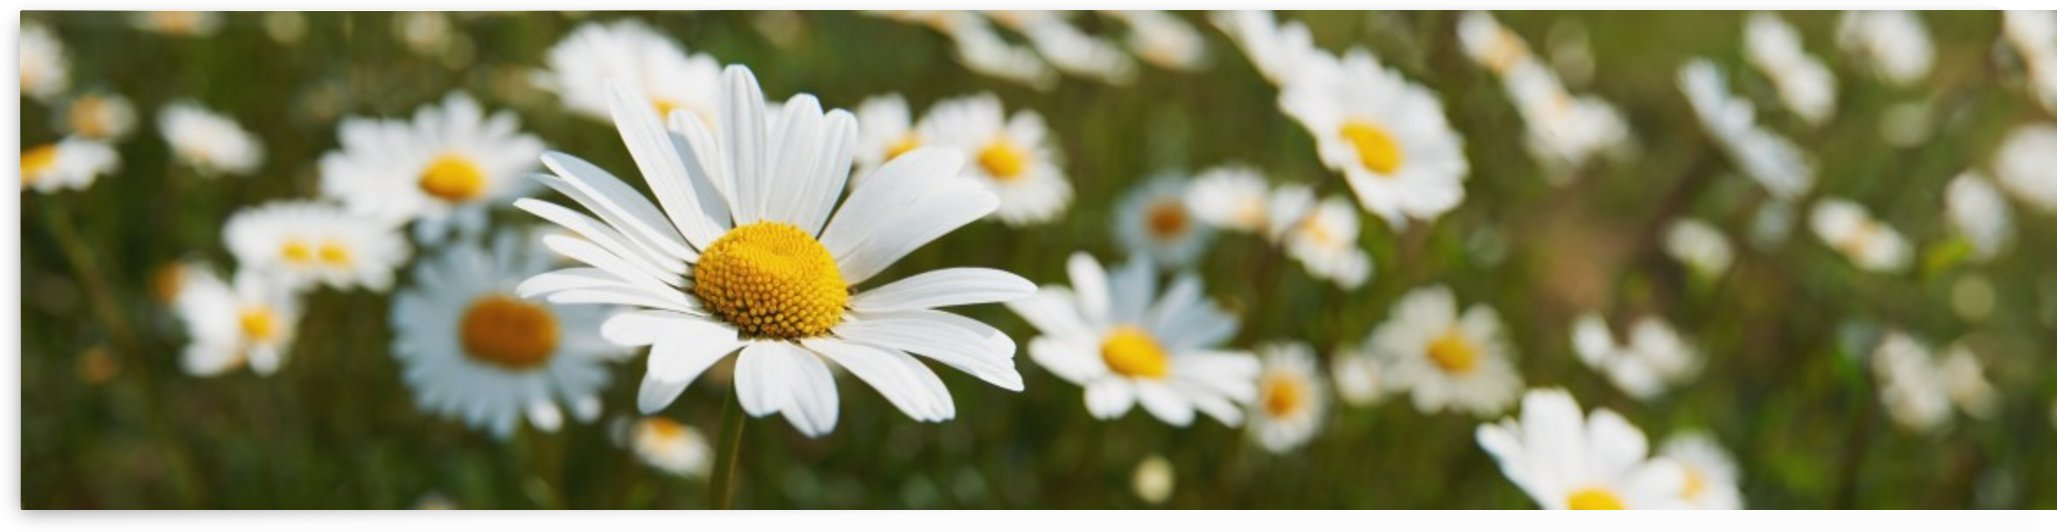 Close up of daisies in a meadow;England by PacificStock